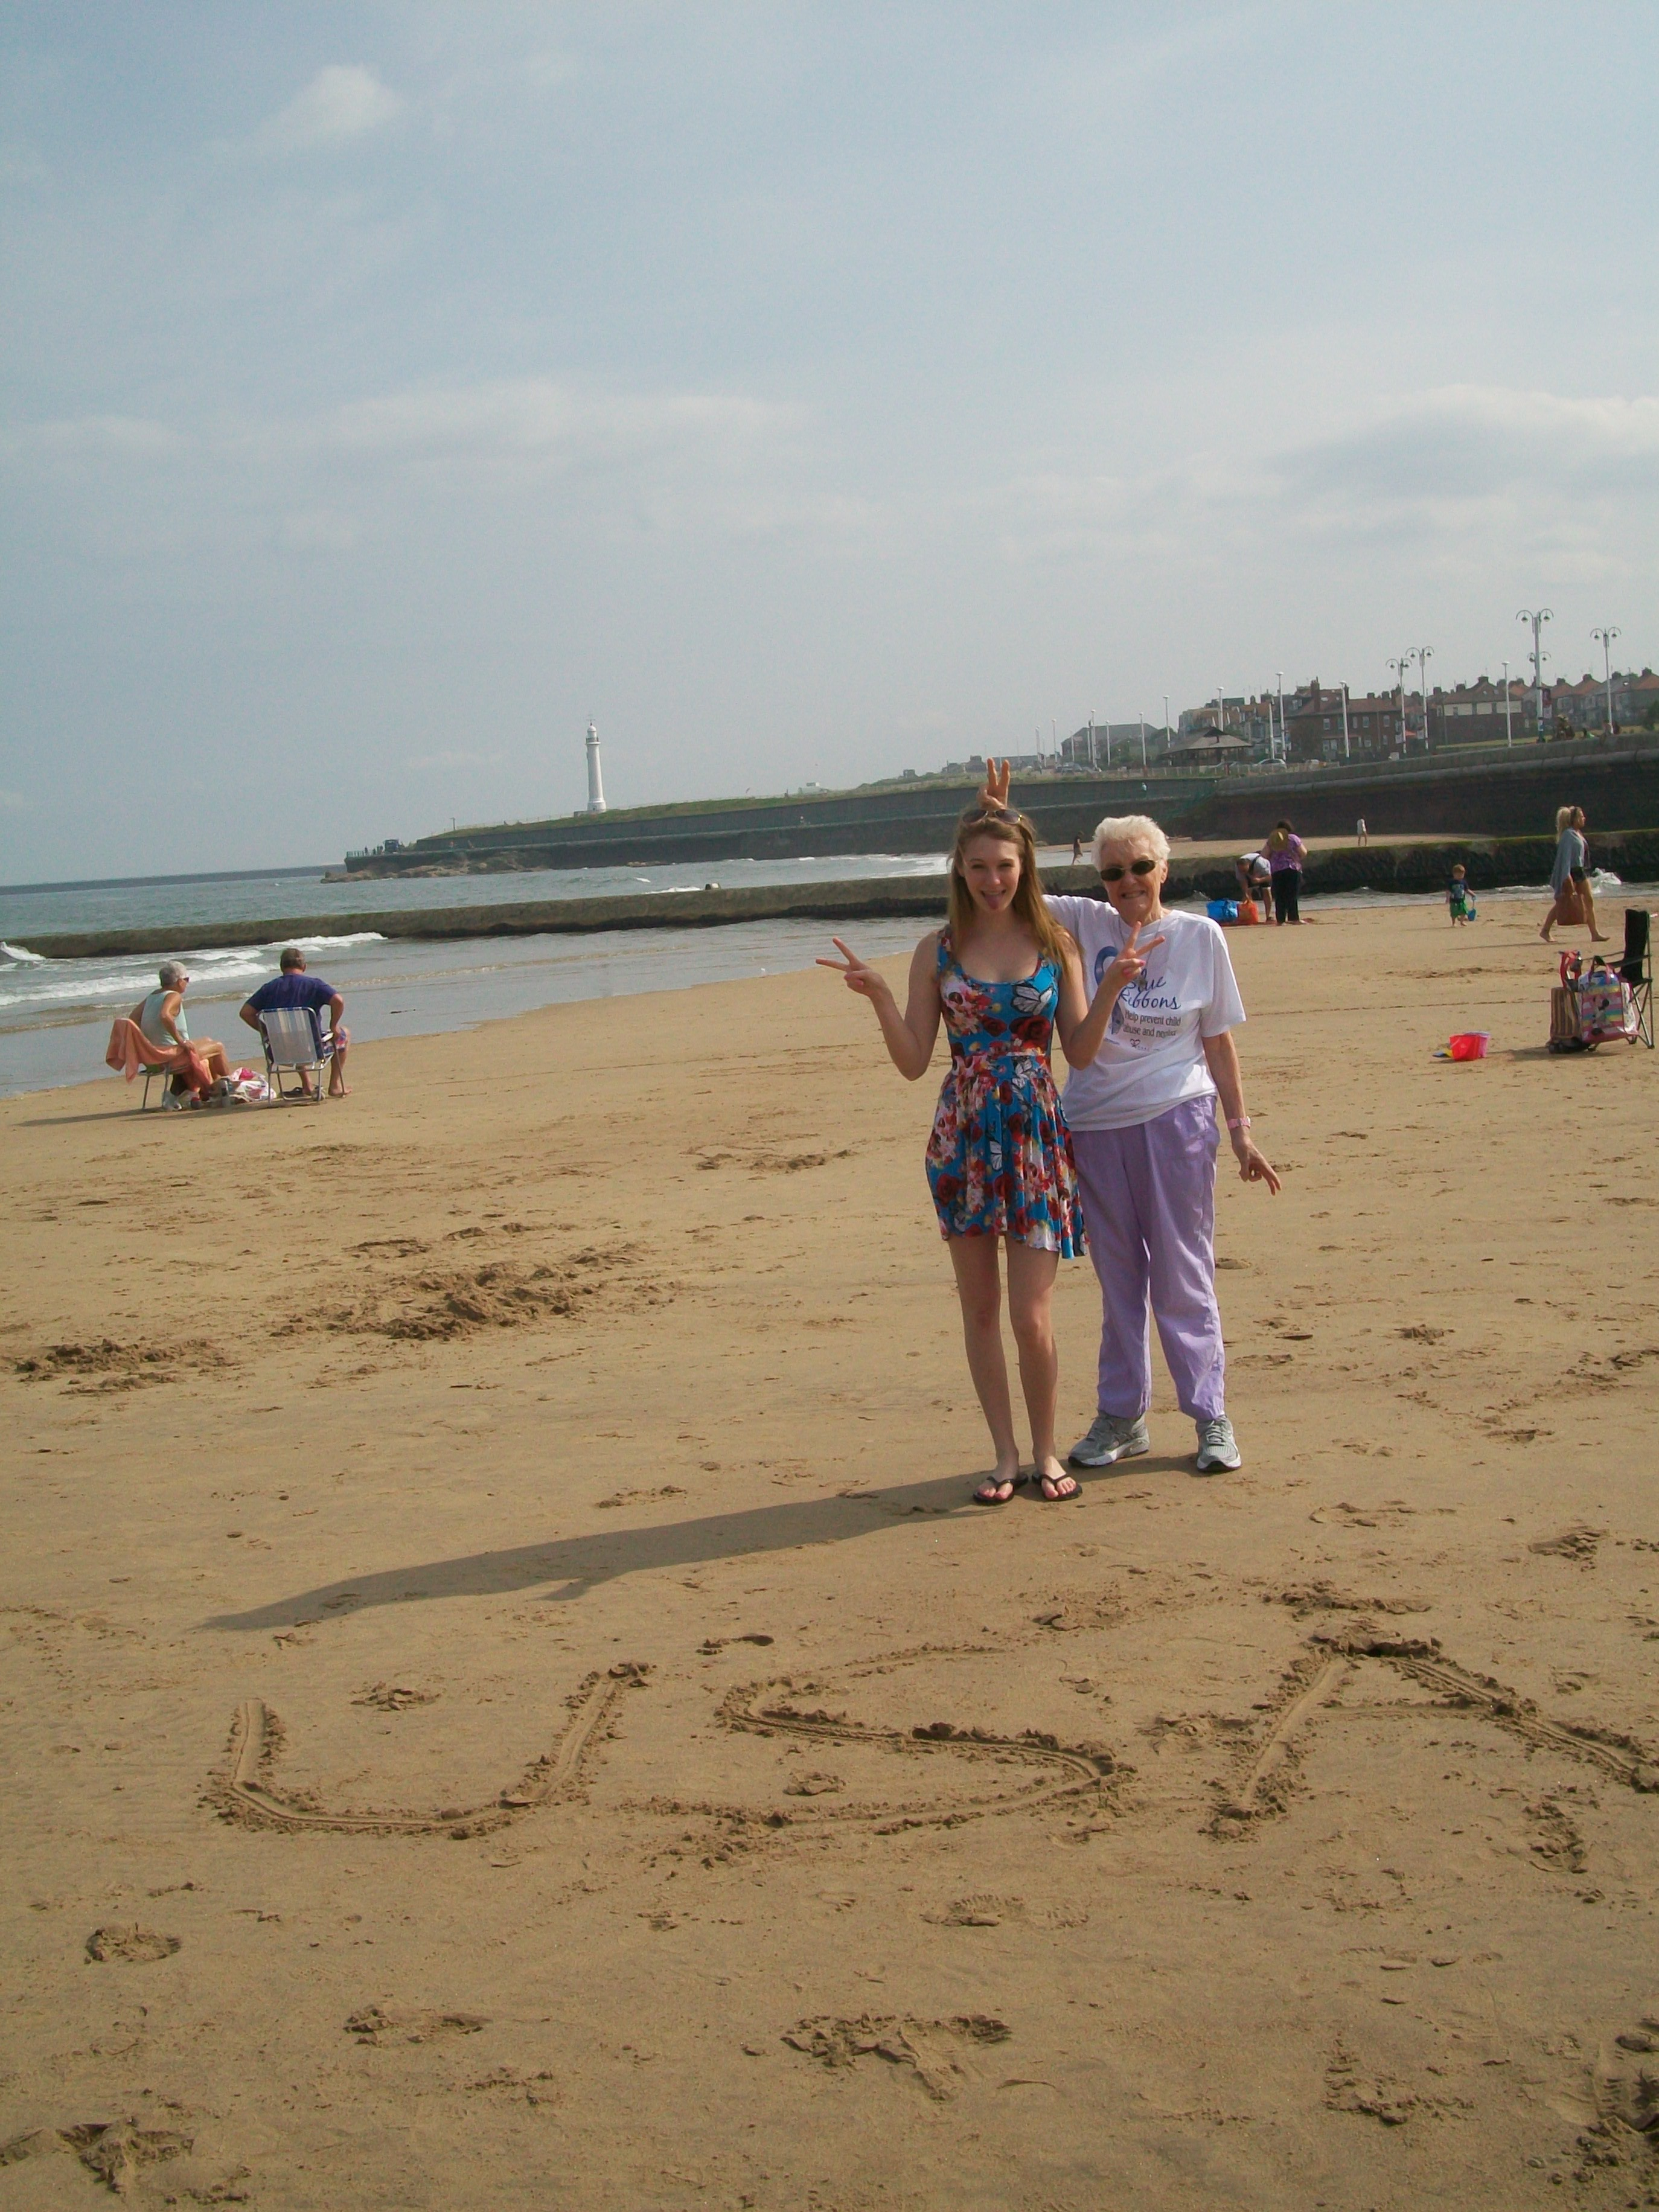 Introducing my American granddaughter to the beach in Sunderland.